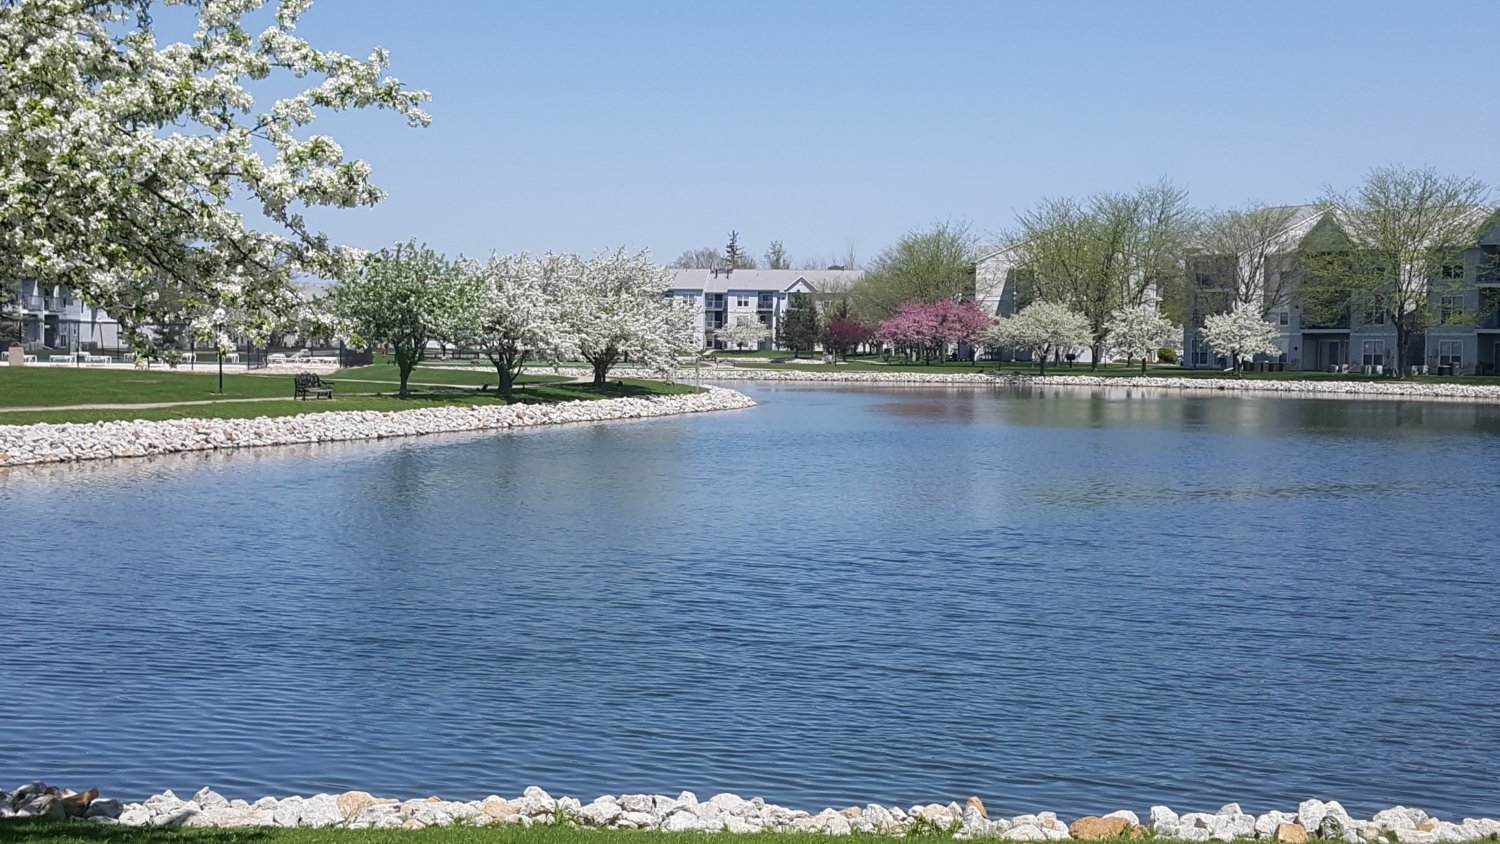 Home - Ironwood Gardens Apartments in Normal IL